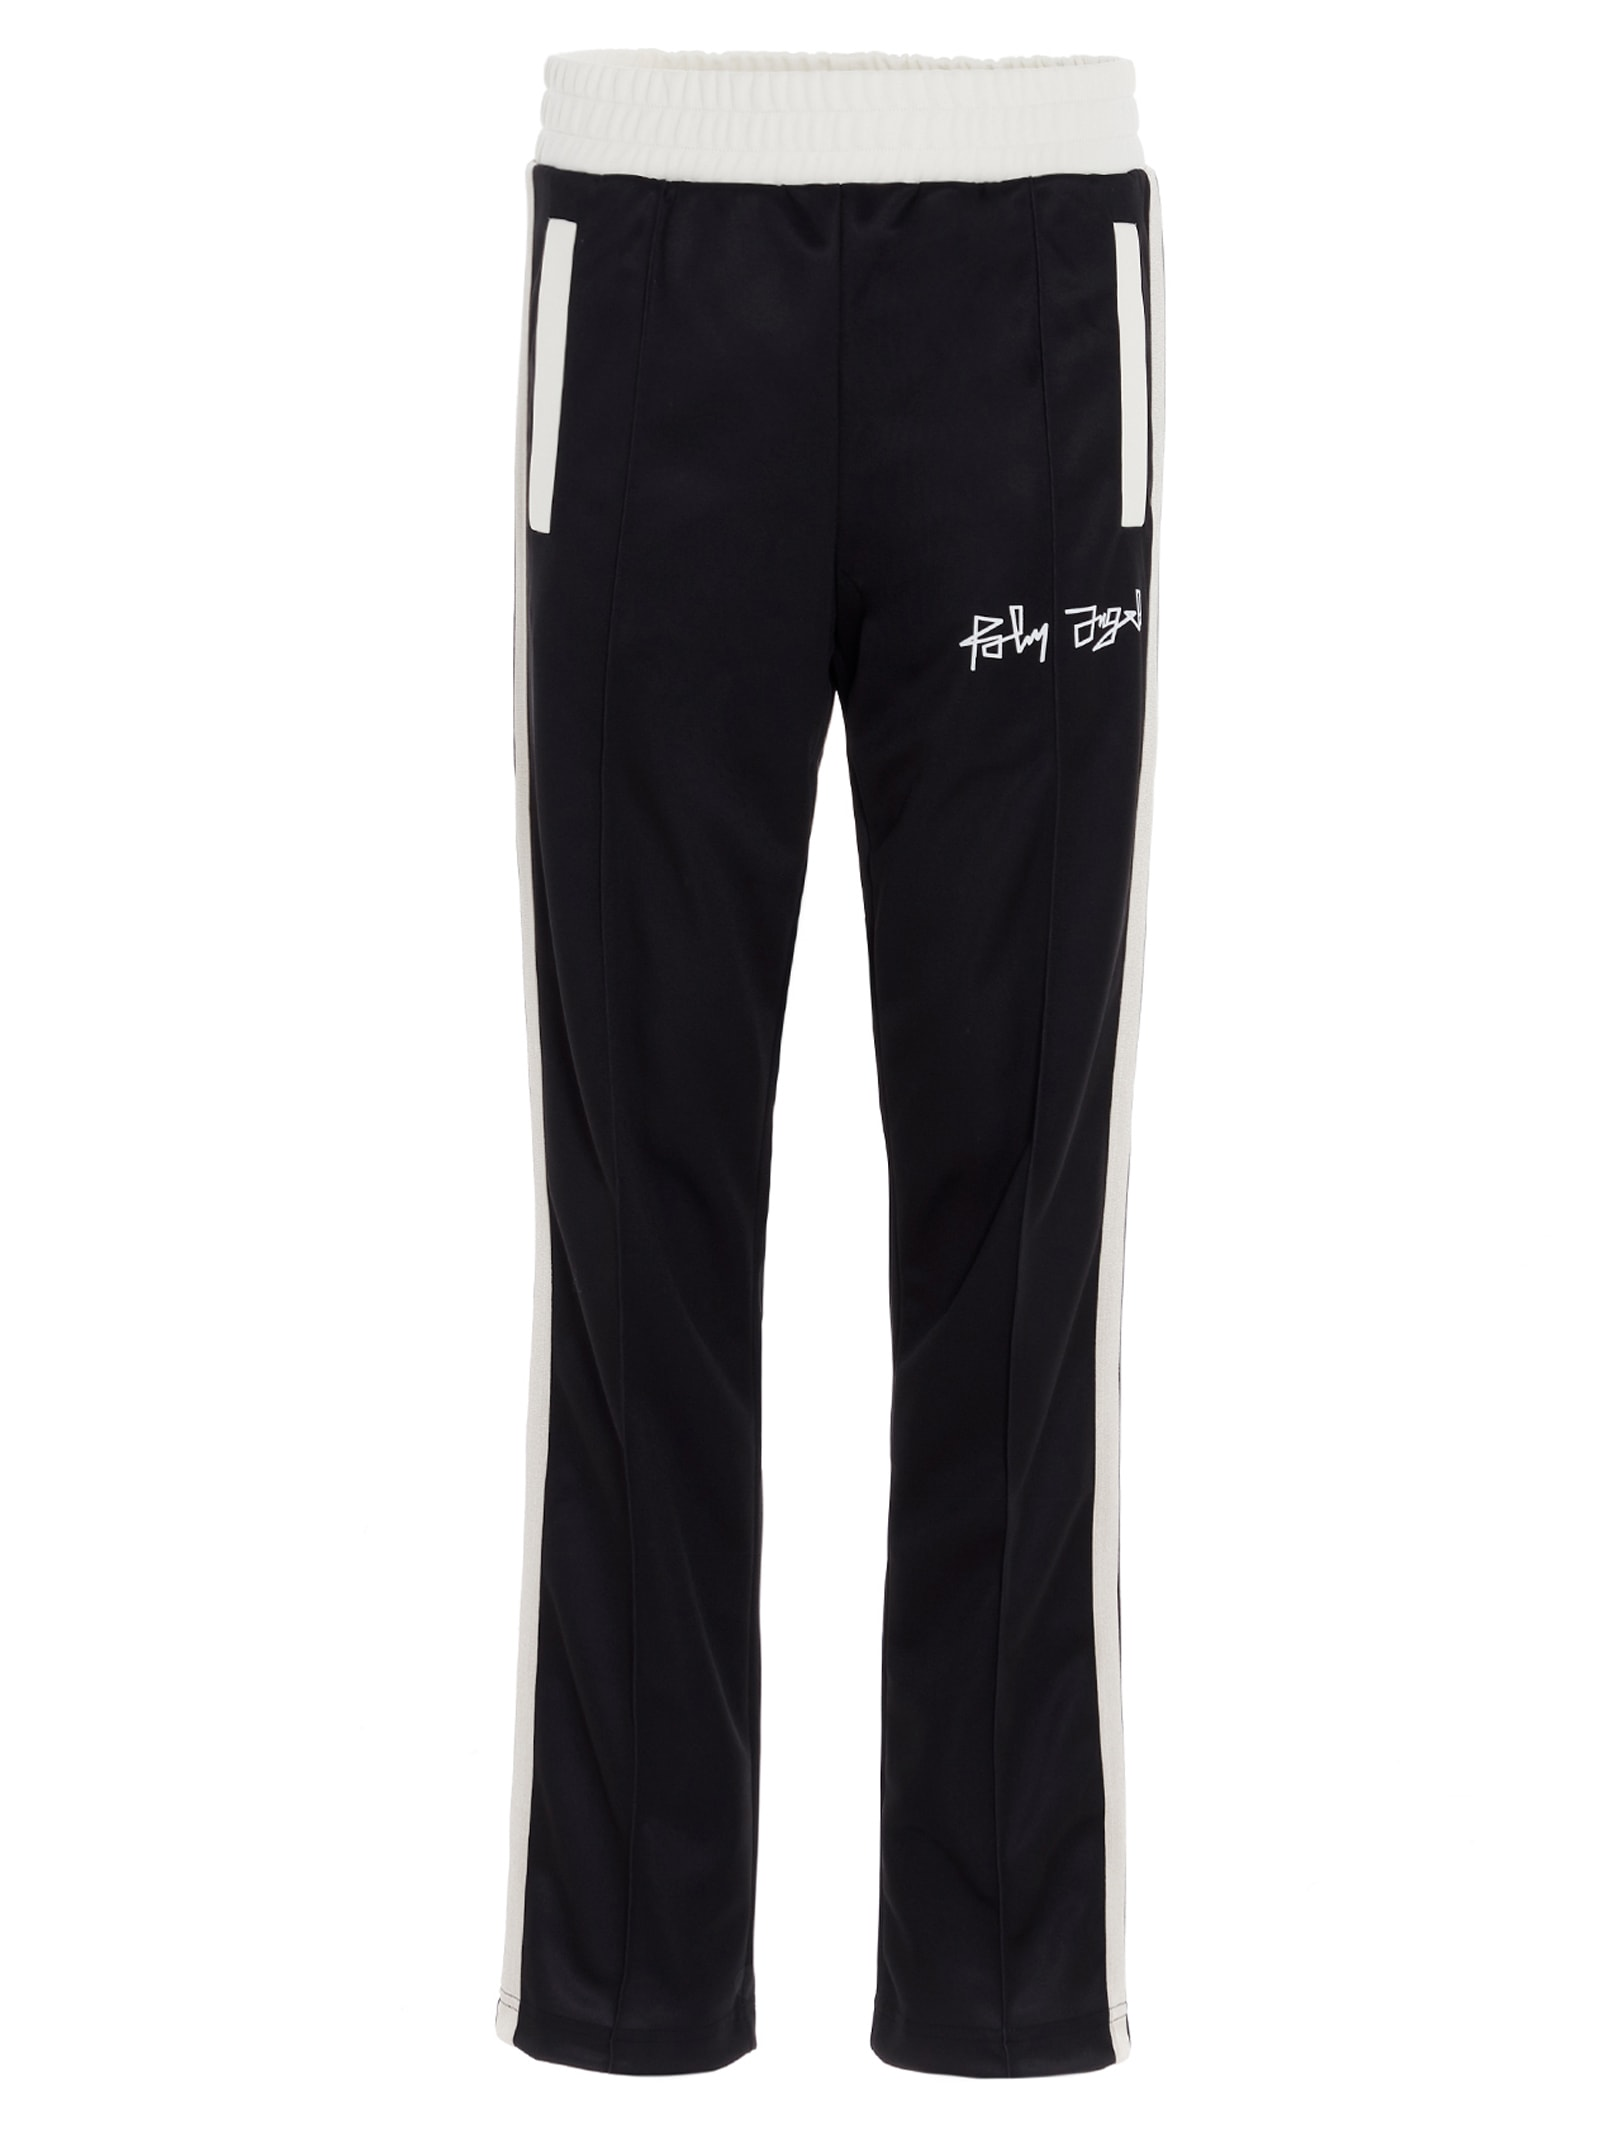 Palm Angels DESERT SKULL SWEATPANTS